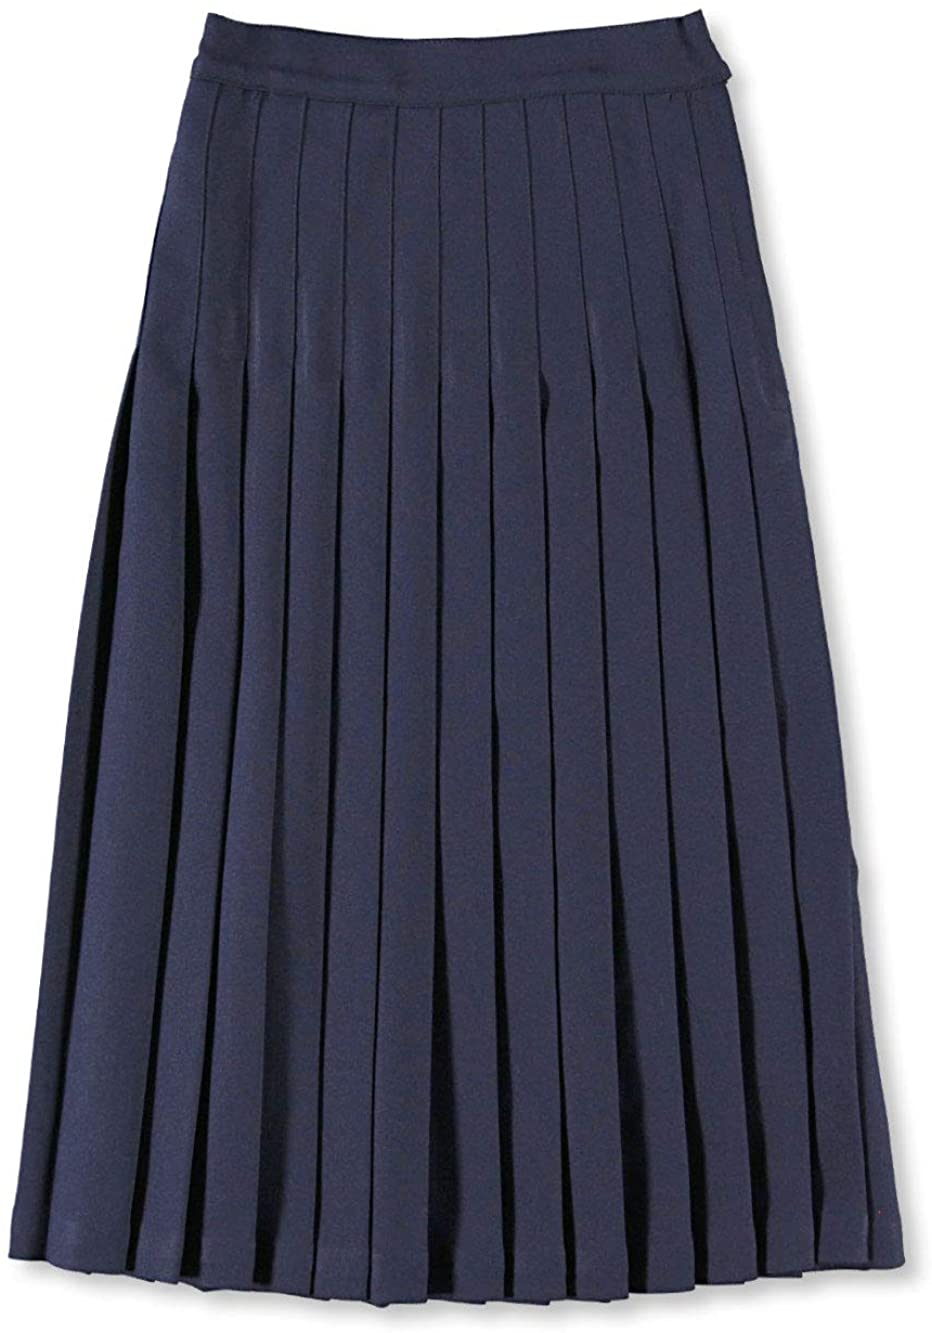 Cookie's Big Girls' Long Pleated Skirt - Navy, 18